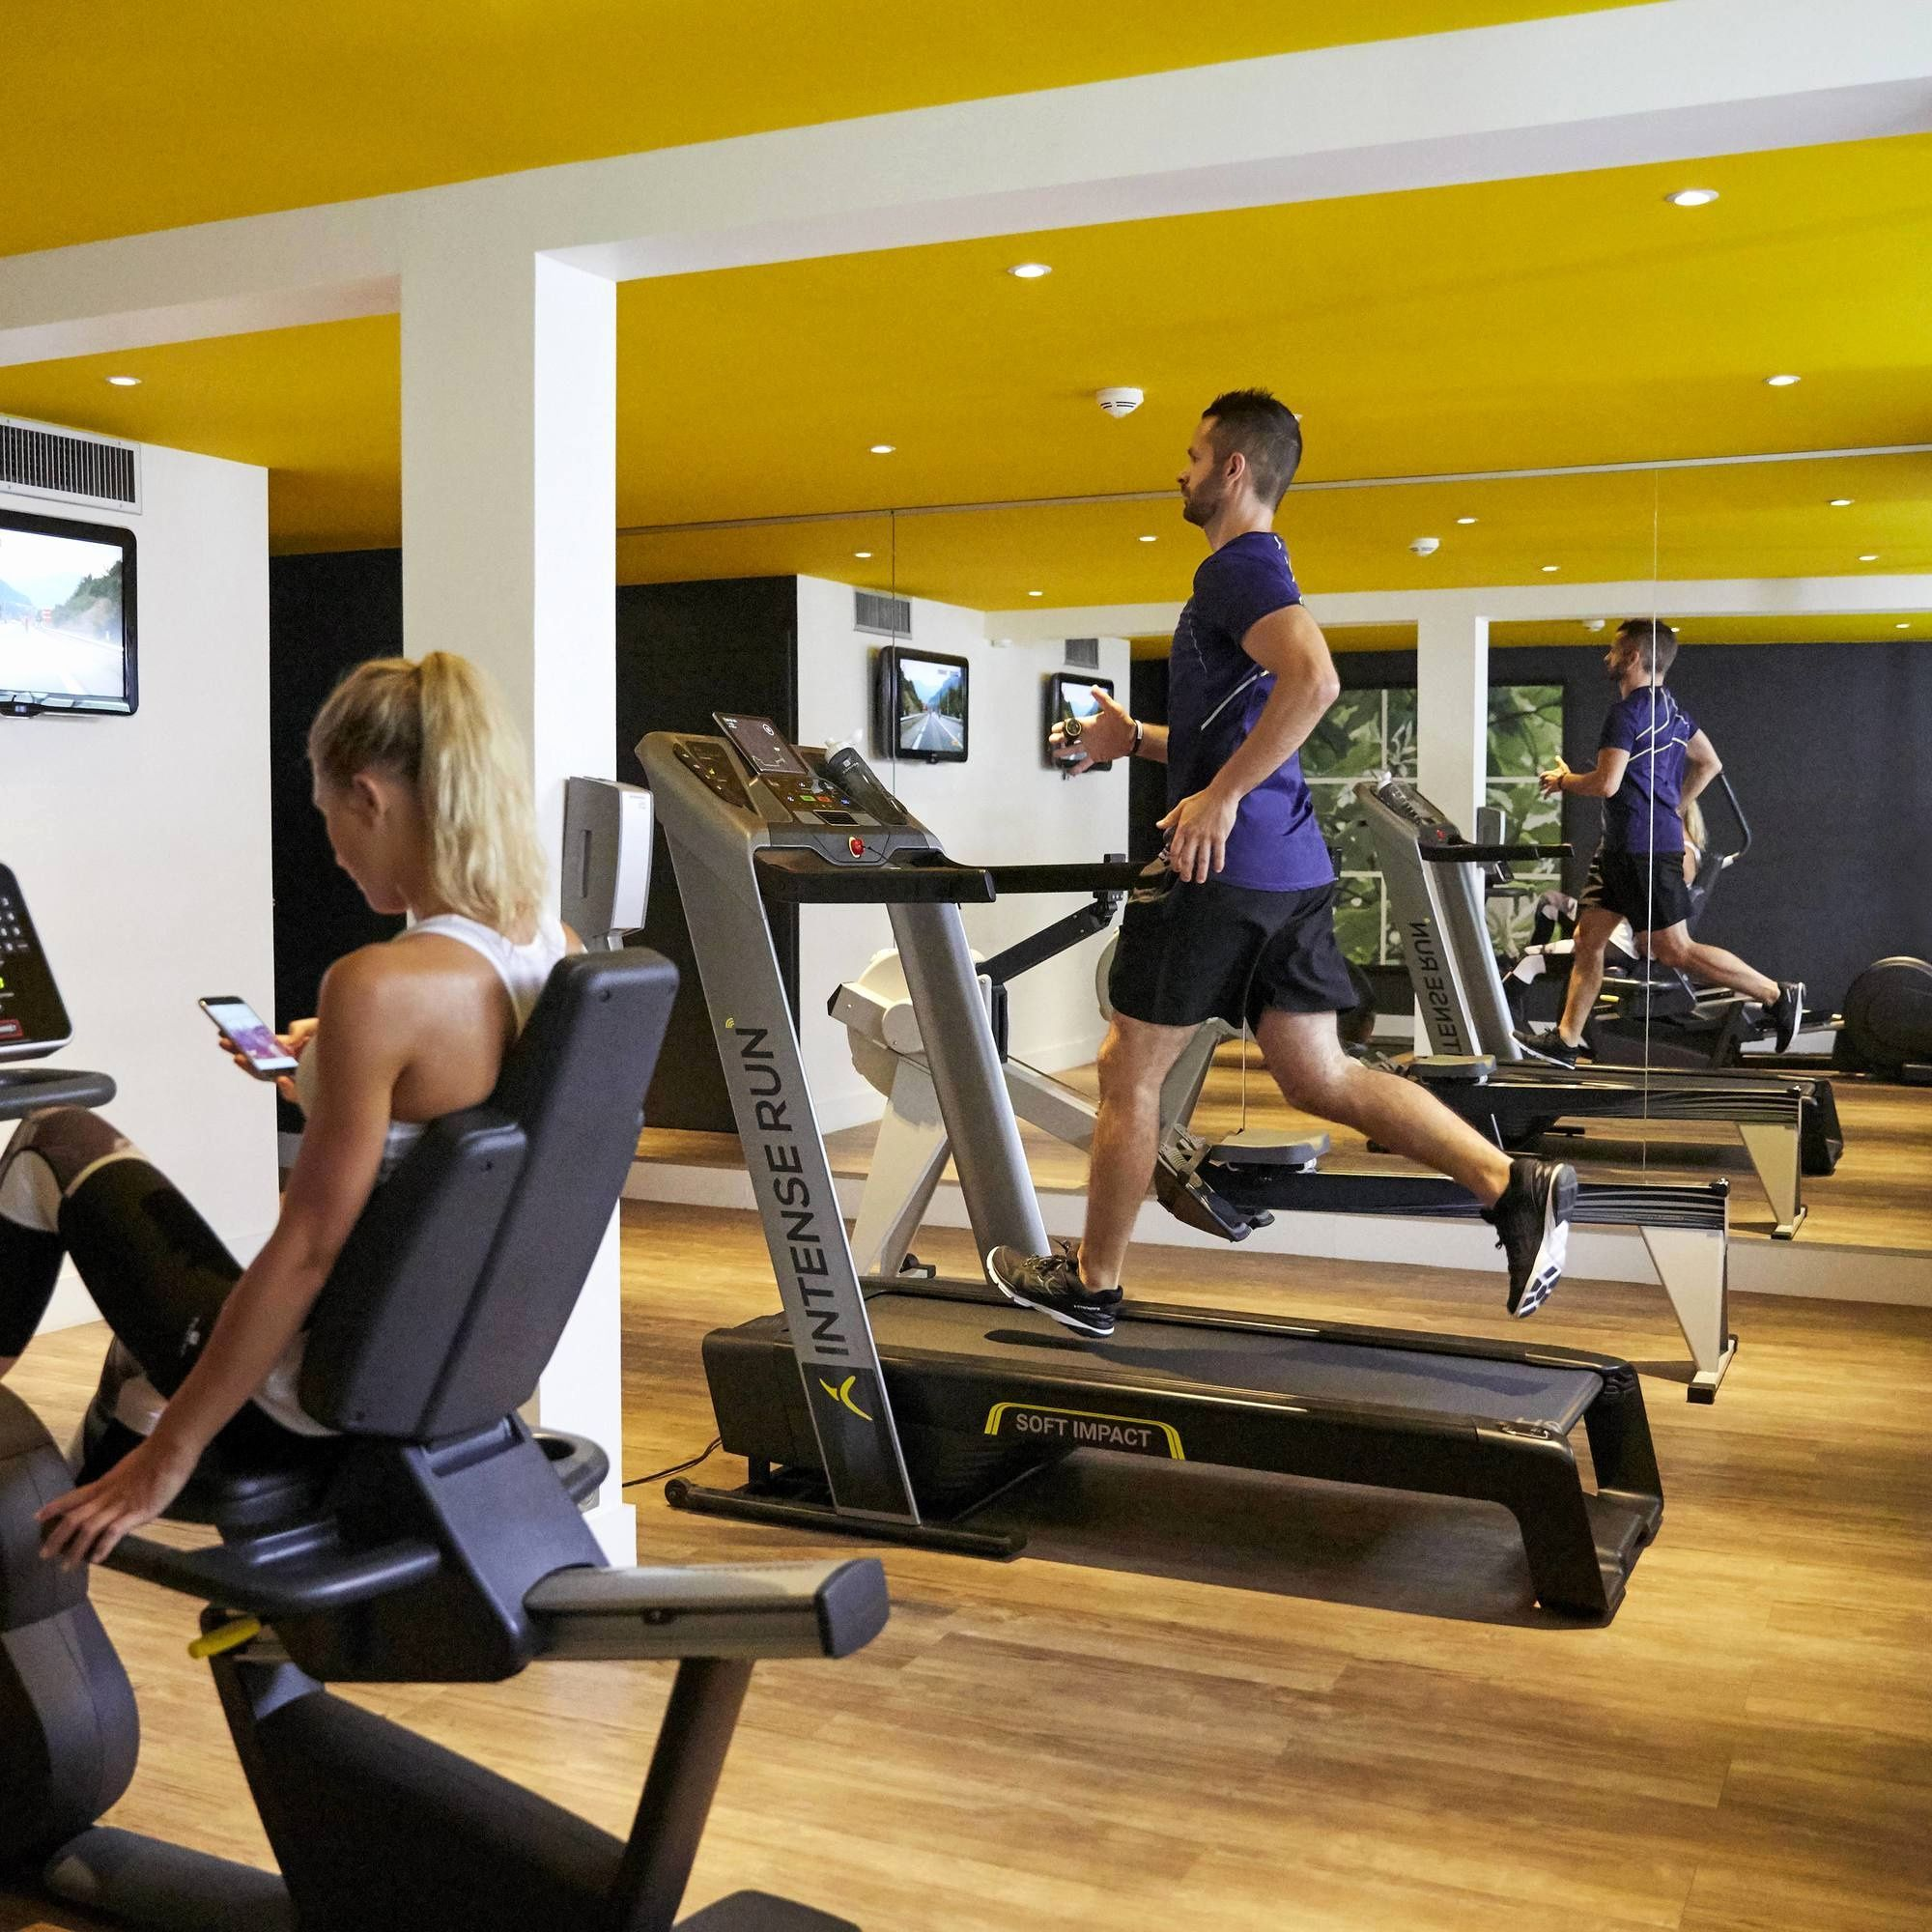 Banc De Musculation Intersport Banc De Musculation Intersport Code